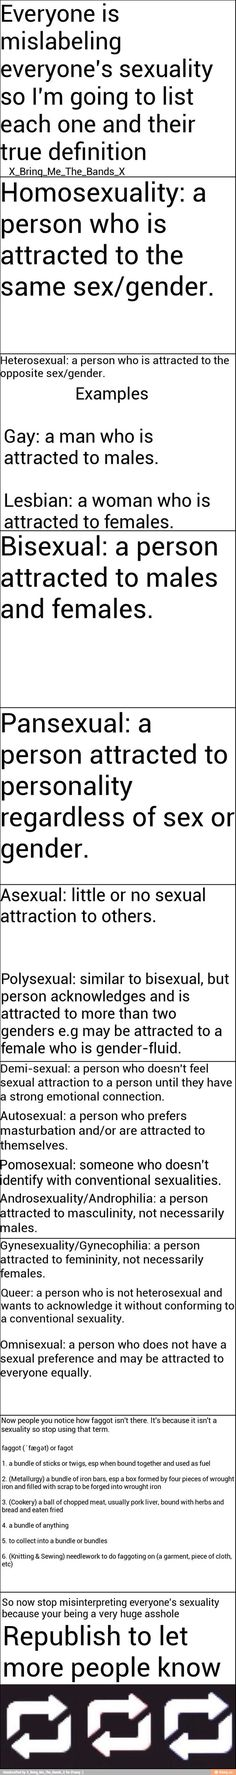 IMPORTANT: Bisexuality is attraction to any 2 genders, not necessarily males and females. I just learned that from a friend in high school.